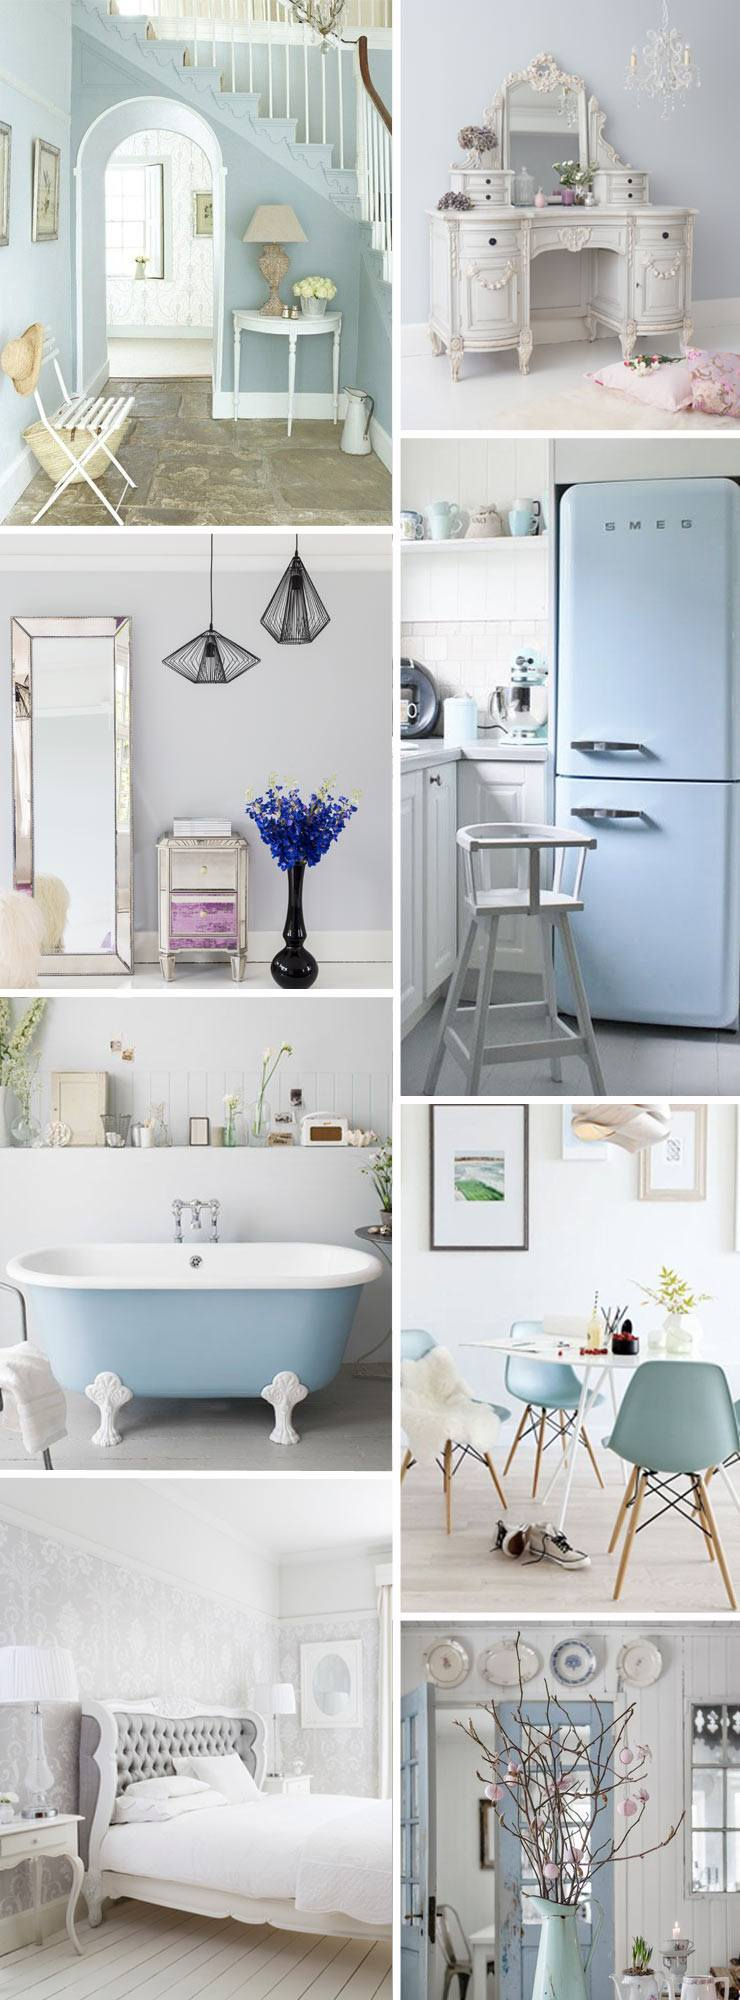 The French Bedroom Company Blog, Get the look: Pale blue and grey. Pastel blue from Pantone's Colour of the year 2016 Serene interiors and fashion inspiration.